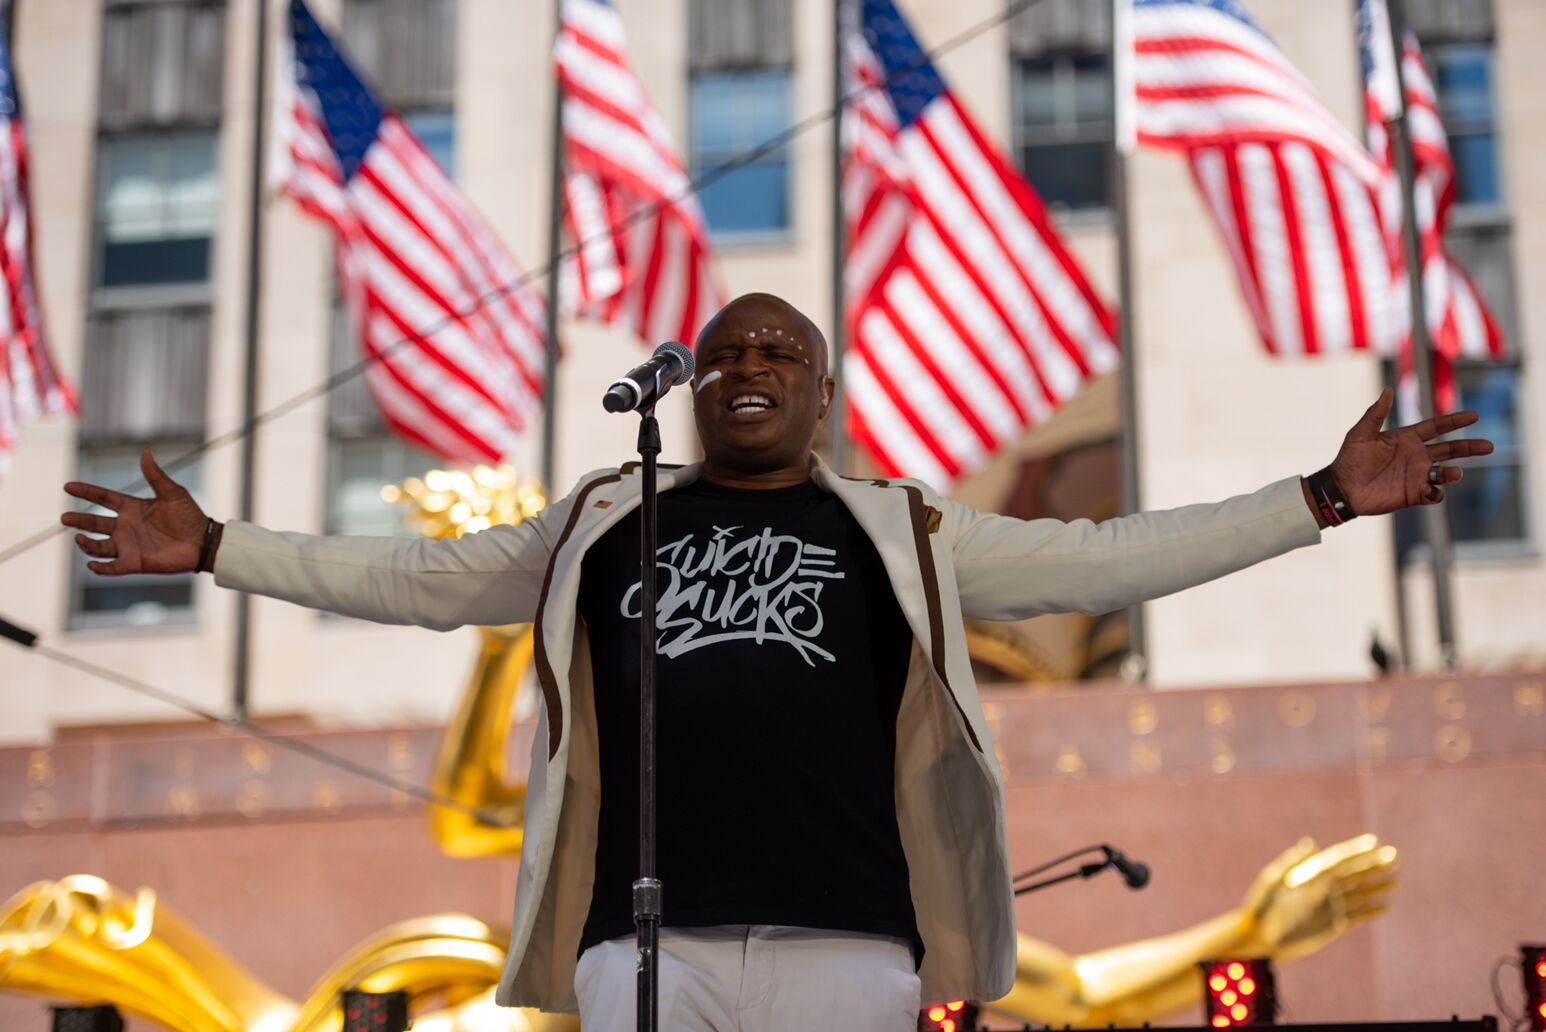 Alex Boye sings the national anthem